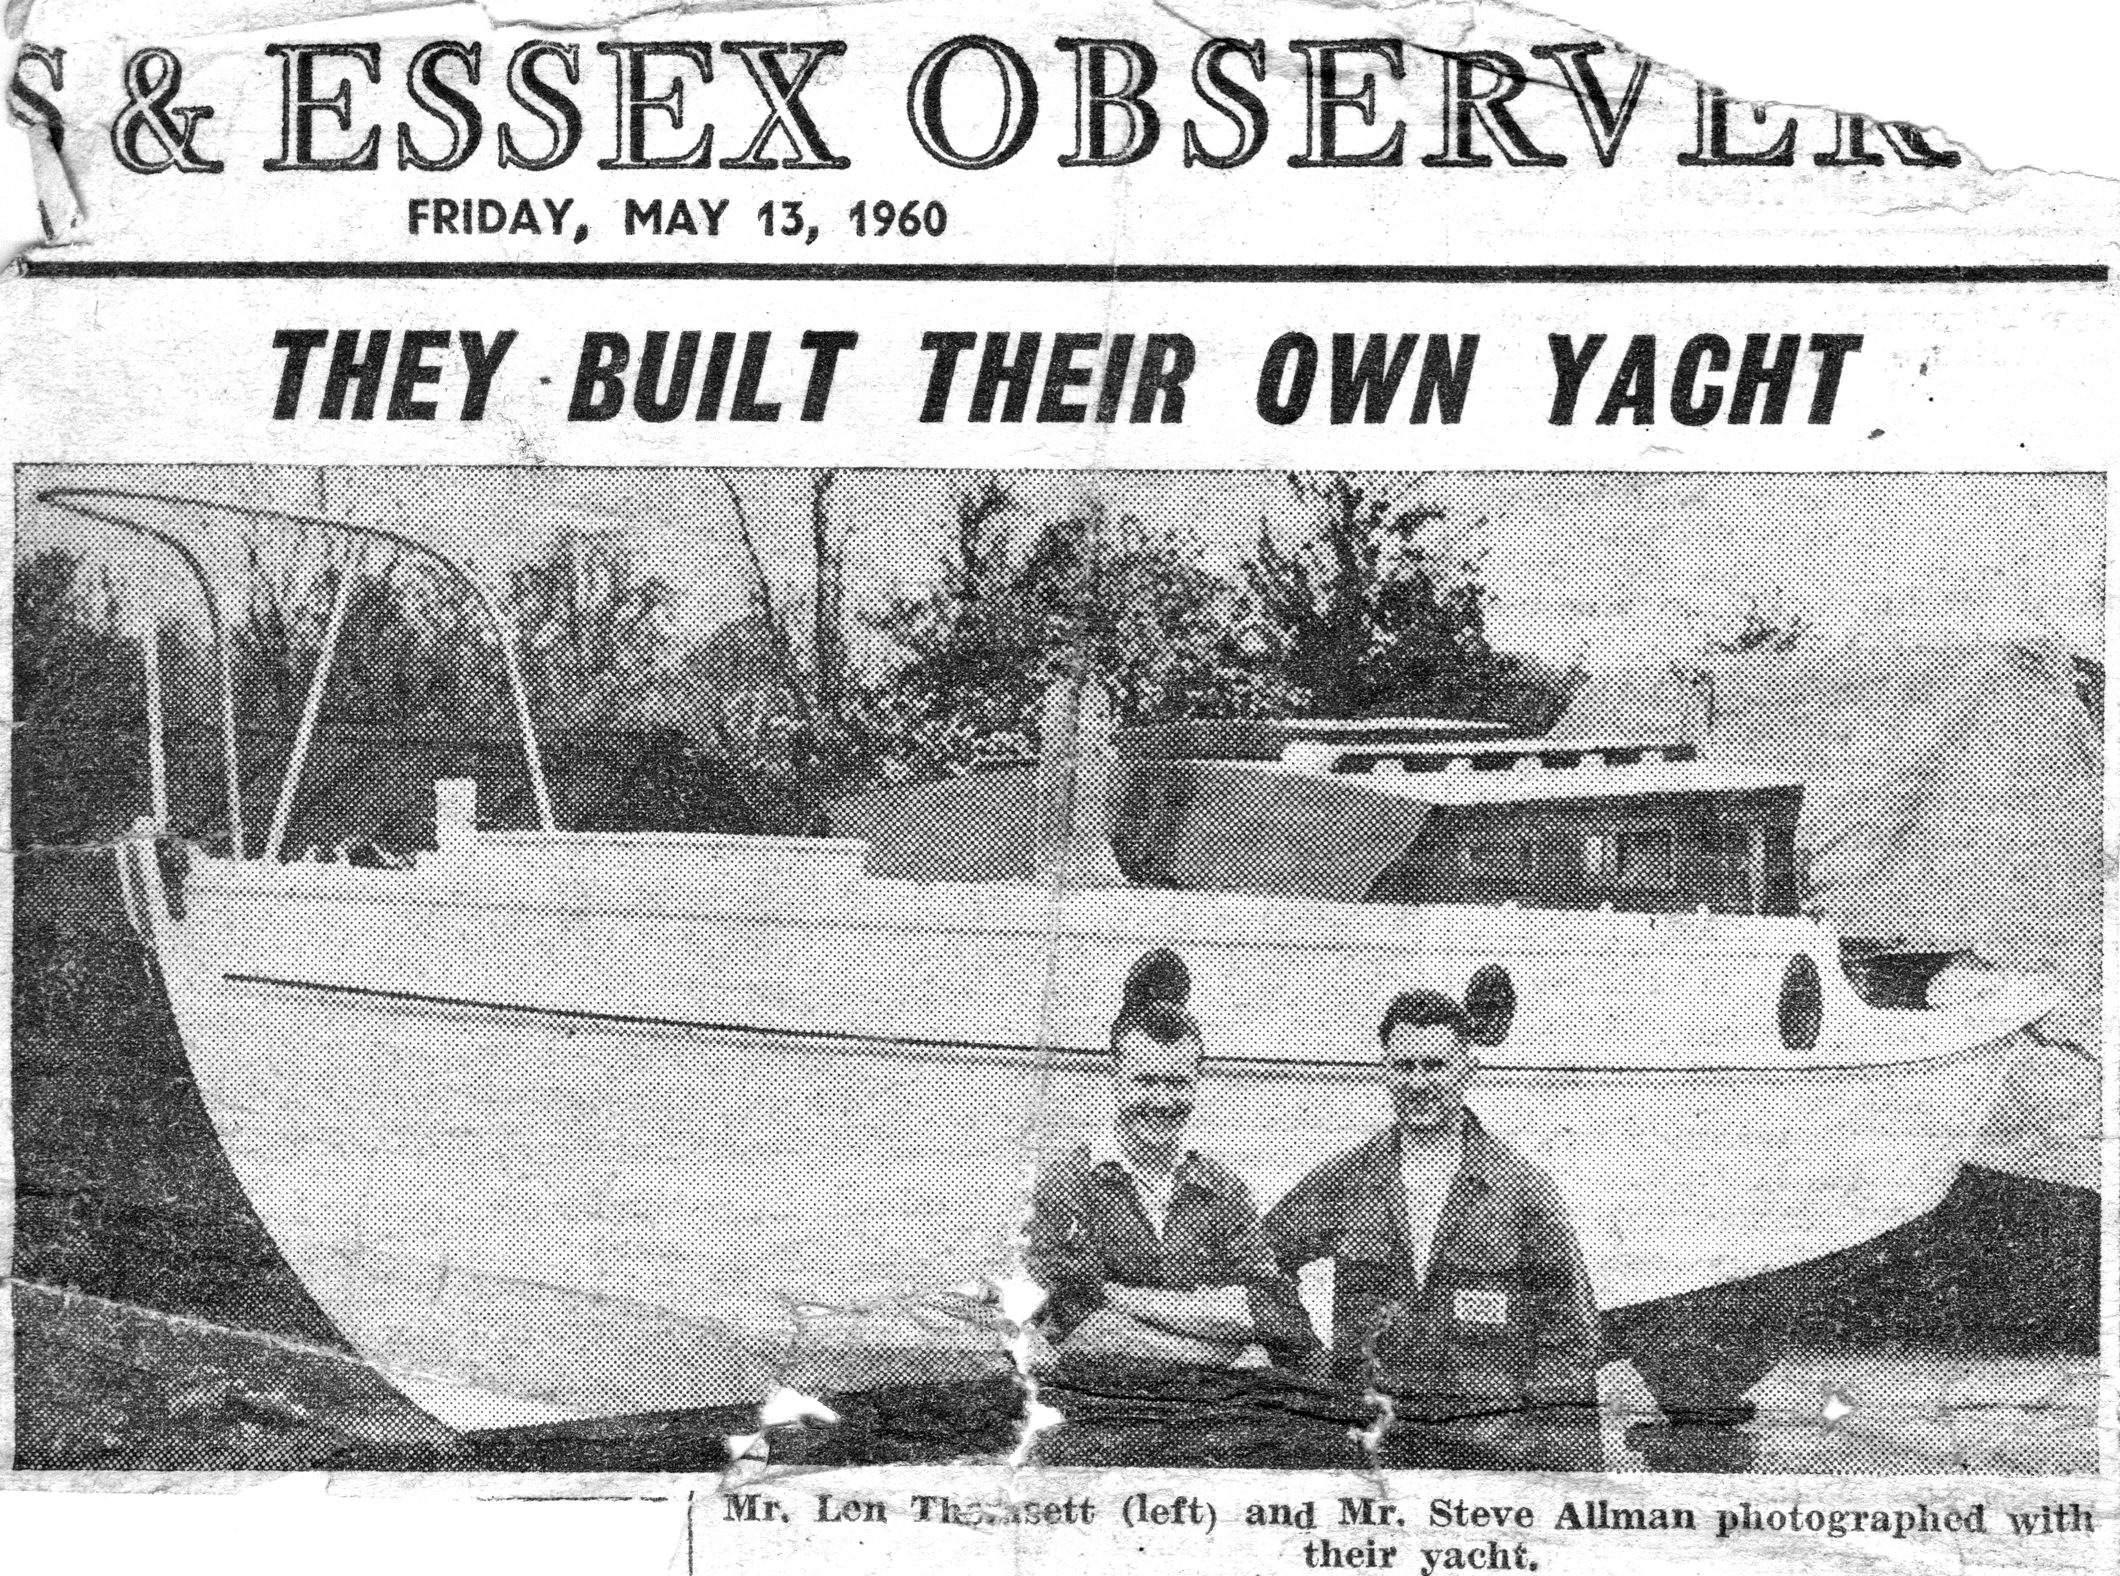 Photograph from the Herts & Essex Observer of Len Thomsett and Steve Allman with their yacht Miga